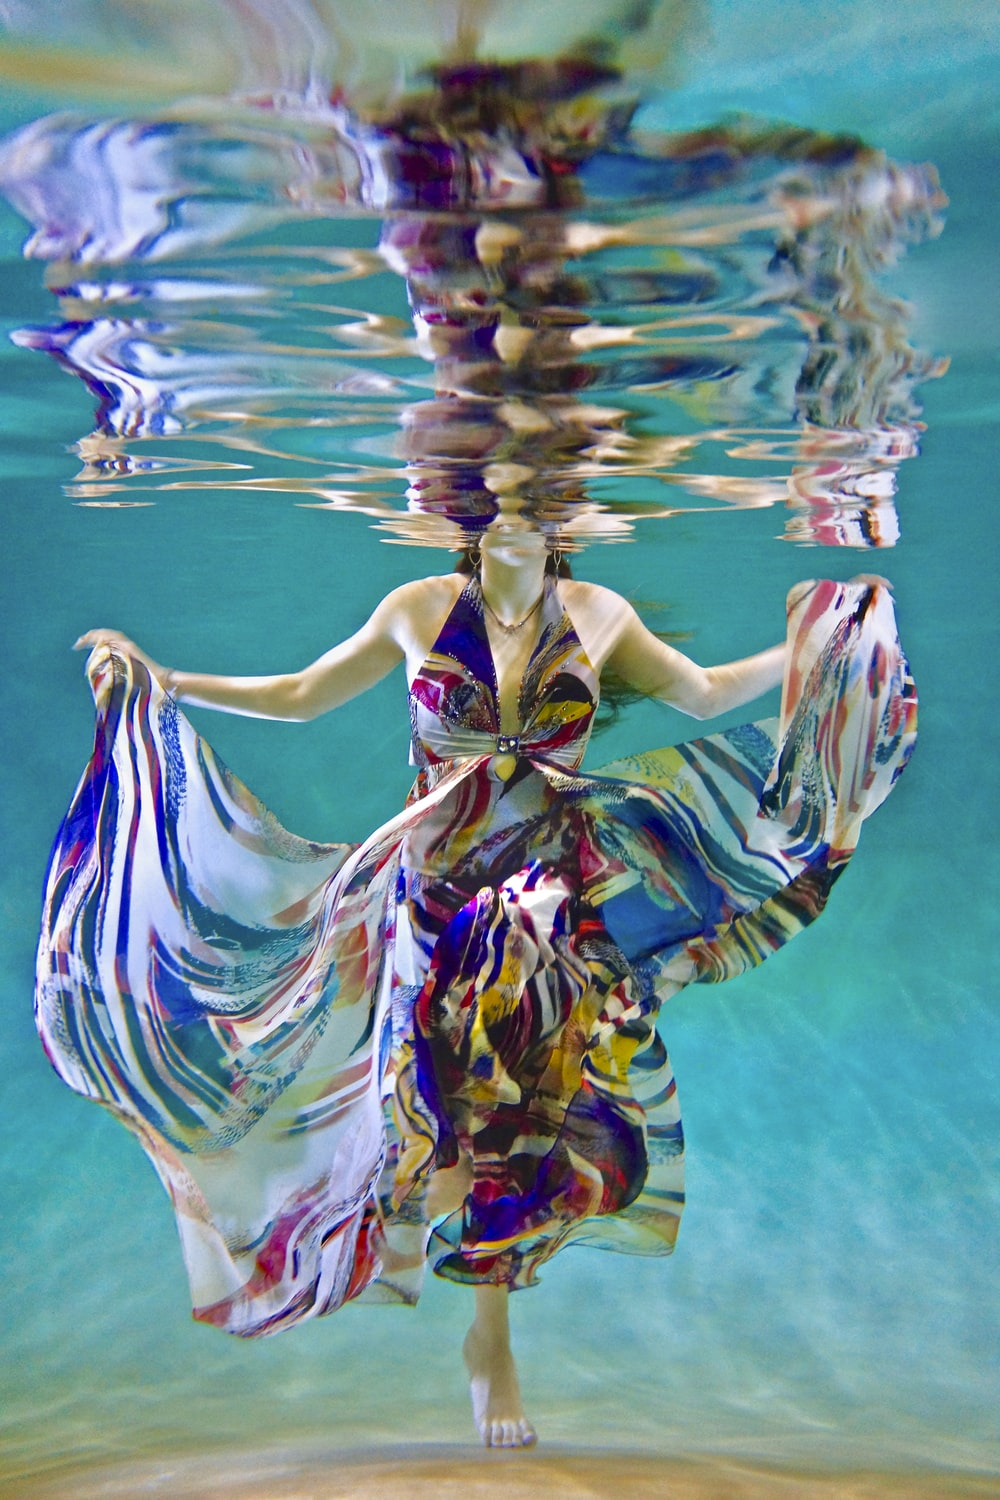 underwater photography of woman in dress swimming